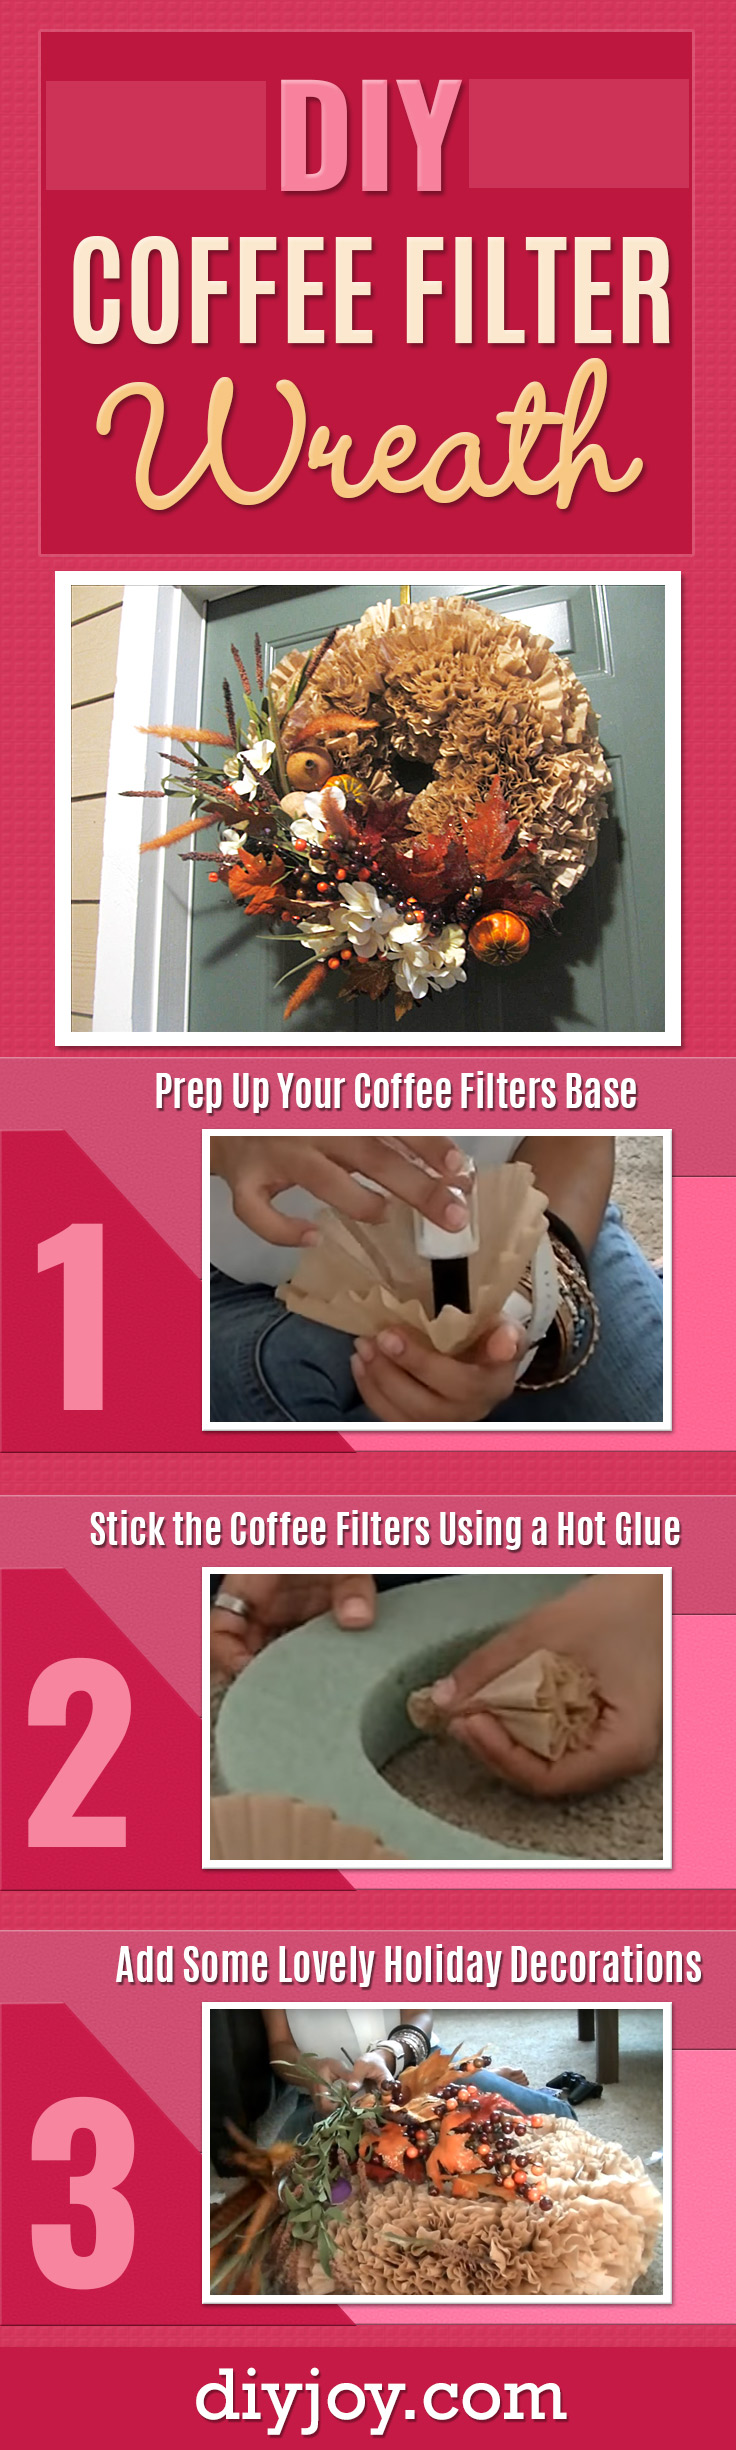 How To Make A Coffee Filter Wreath - Best Easy Wreath for Your Door - Cheap DIY Home Decor Ideas and Creative Crafts on a Budget - Do It Yourself Holiday Decor and Rustic, Country Crafts Tutorials